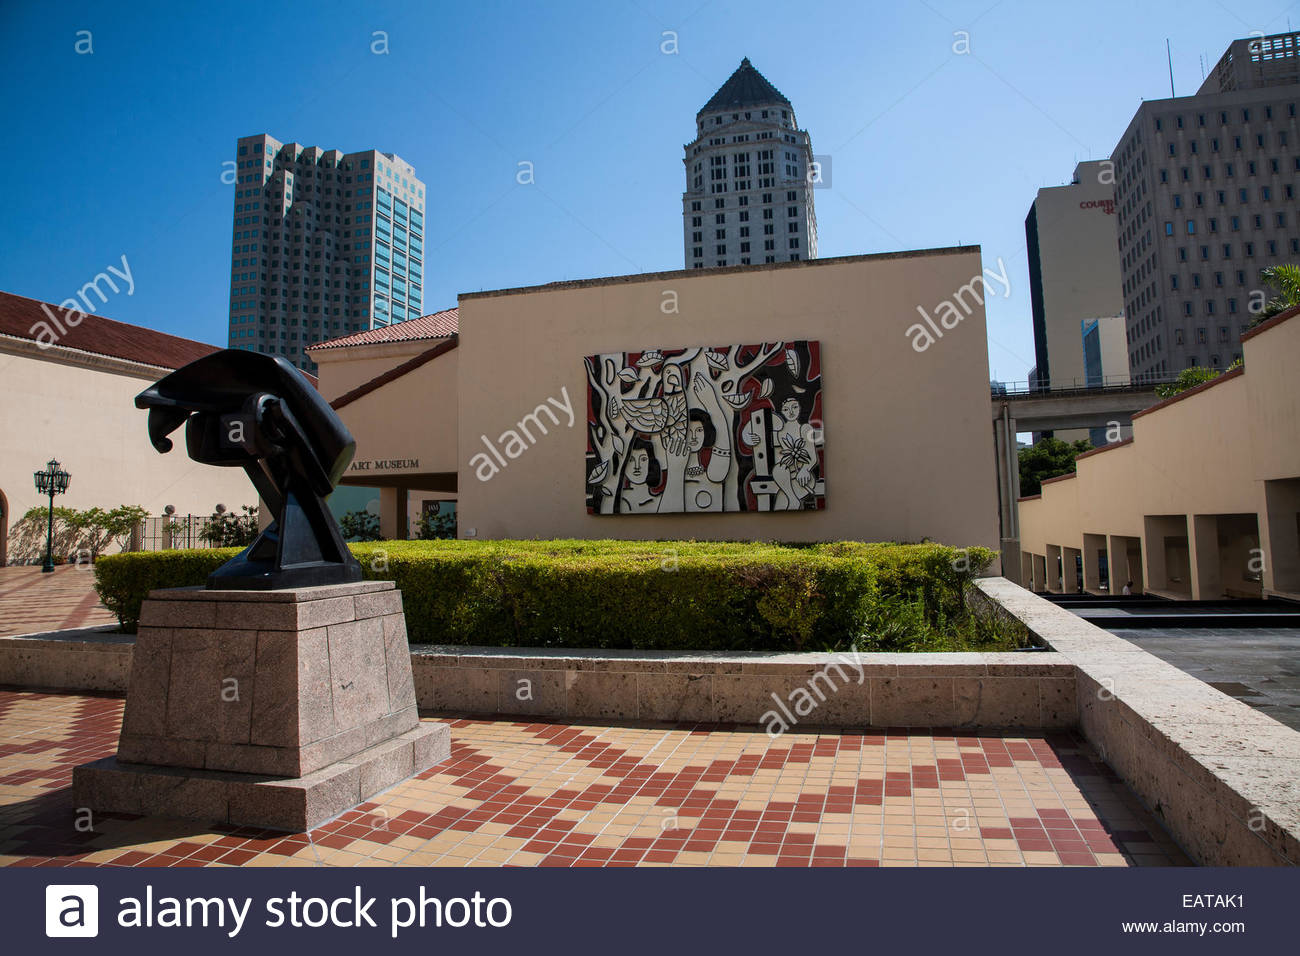 Sculpture and art at the Dade Cultural Arts Center. - Stock Image